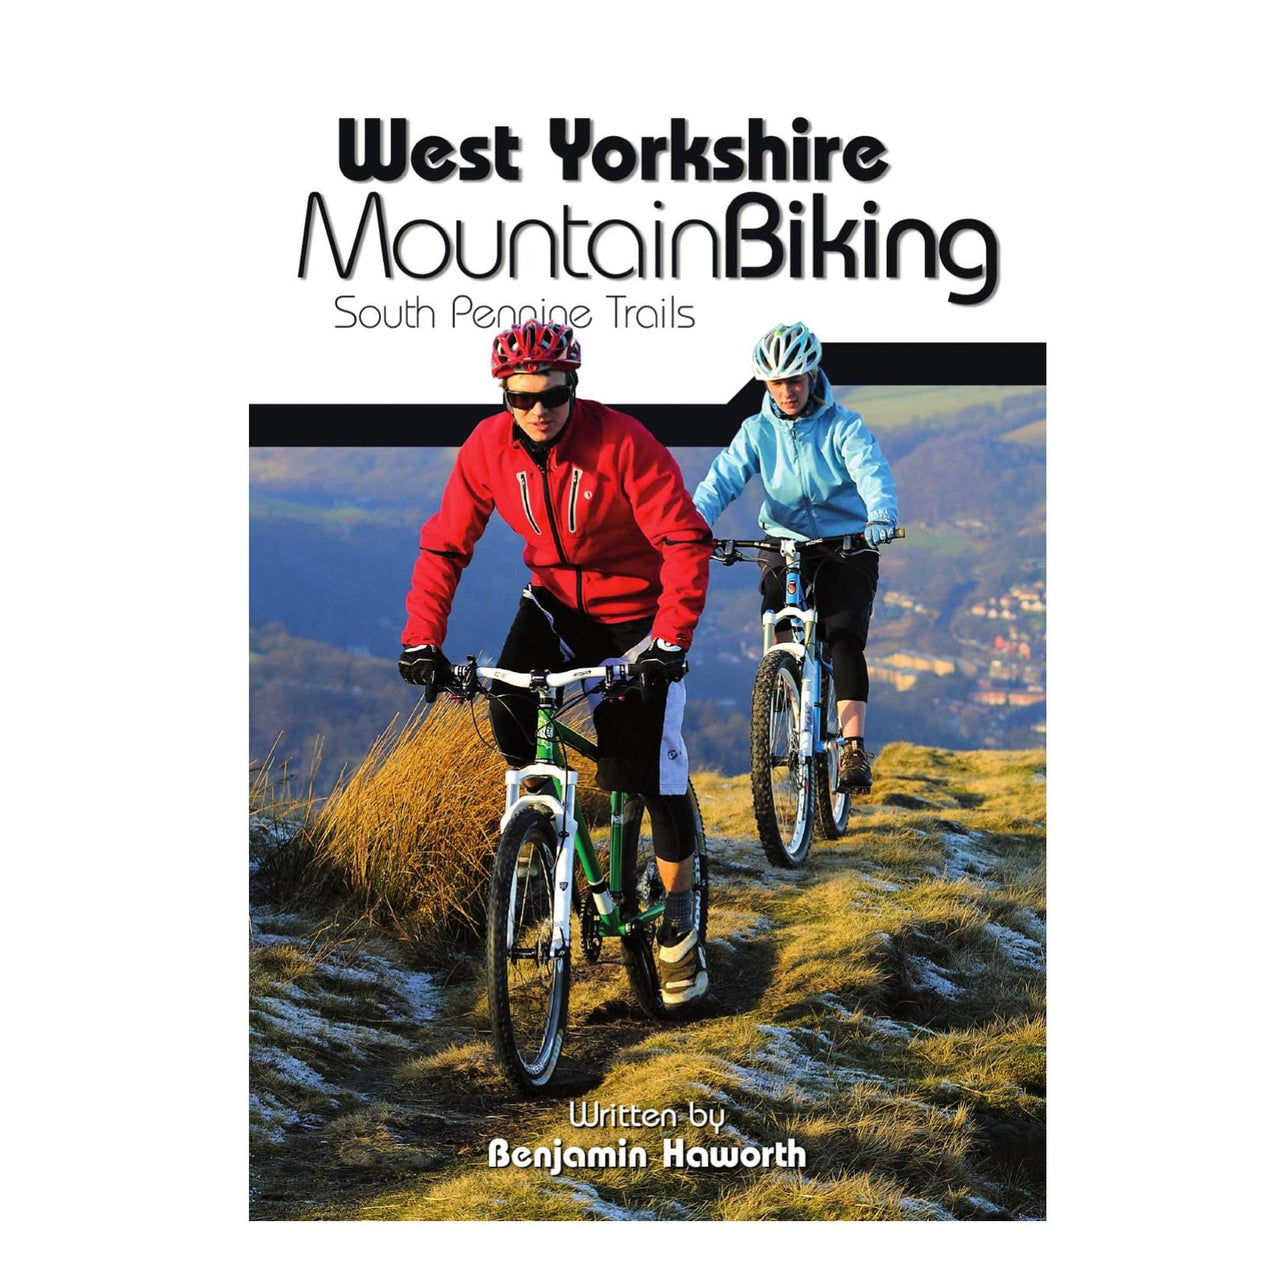 West Yorkshire Mountain Biking; South Pennine Trails